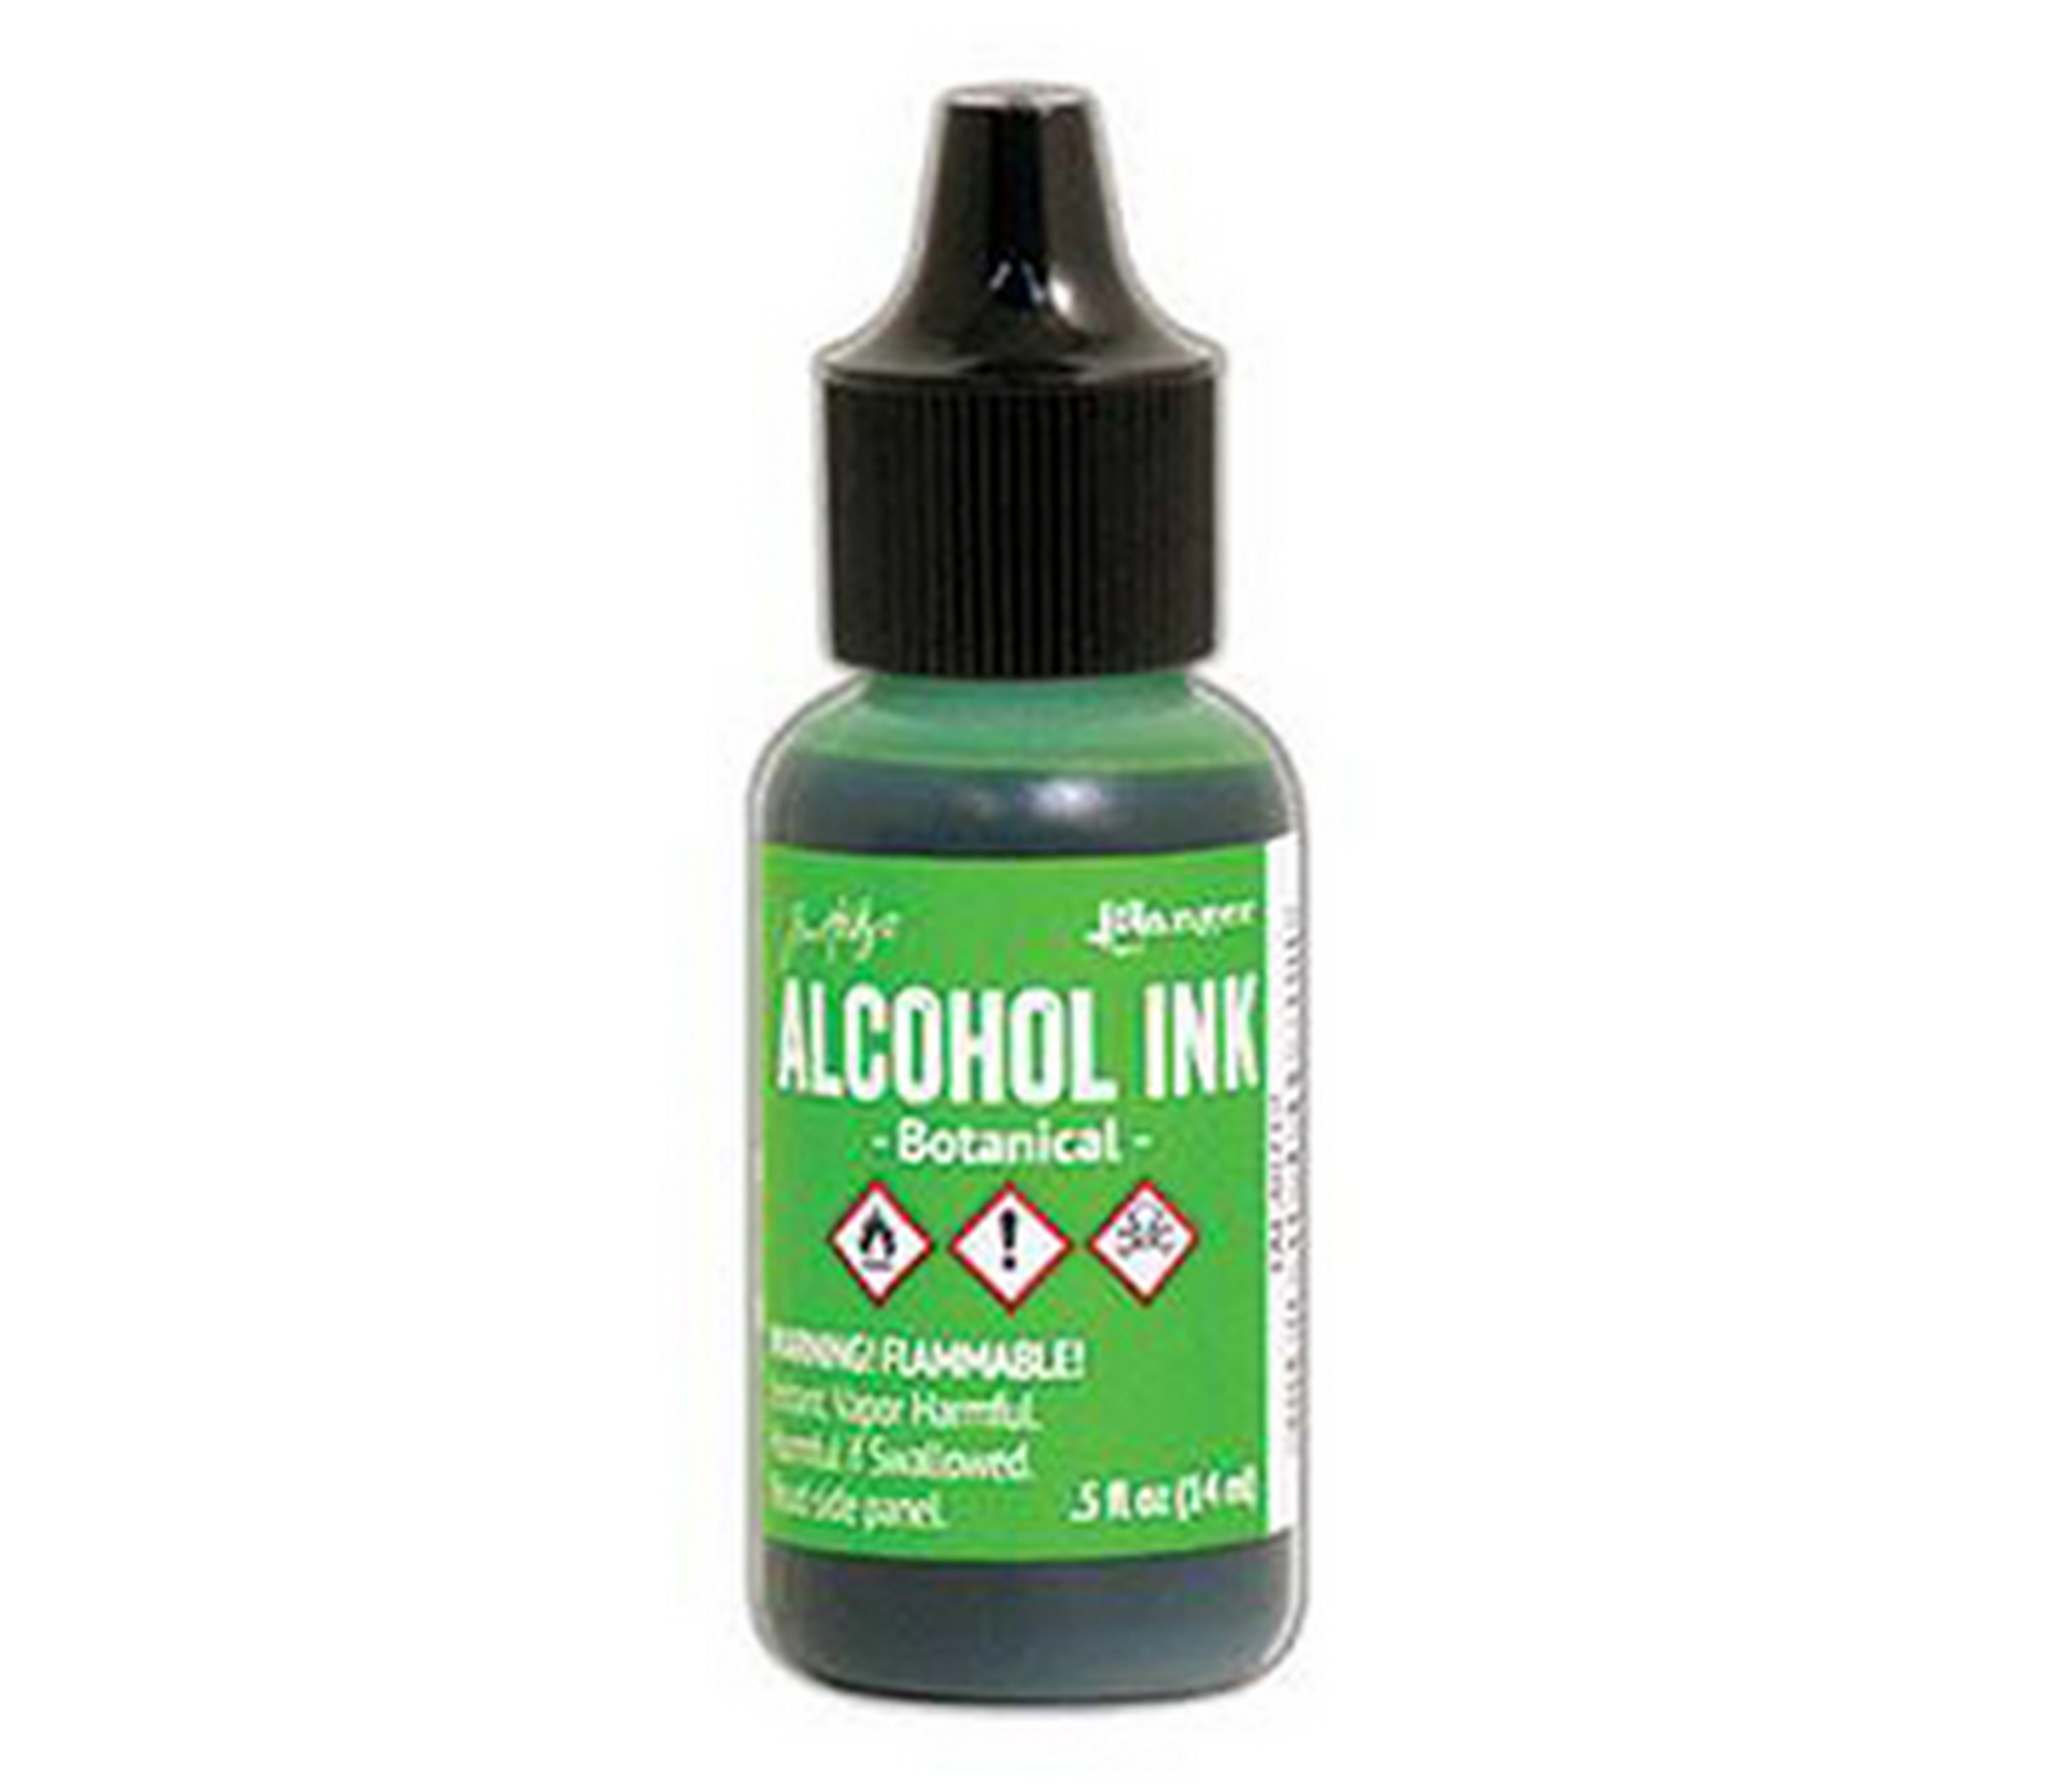 (74609) ALCOHOL INK BOTANICAL 0.5OZ - ORMD